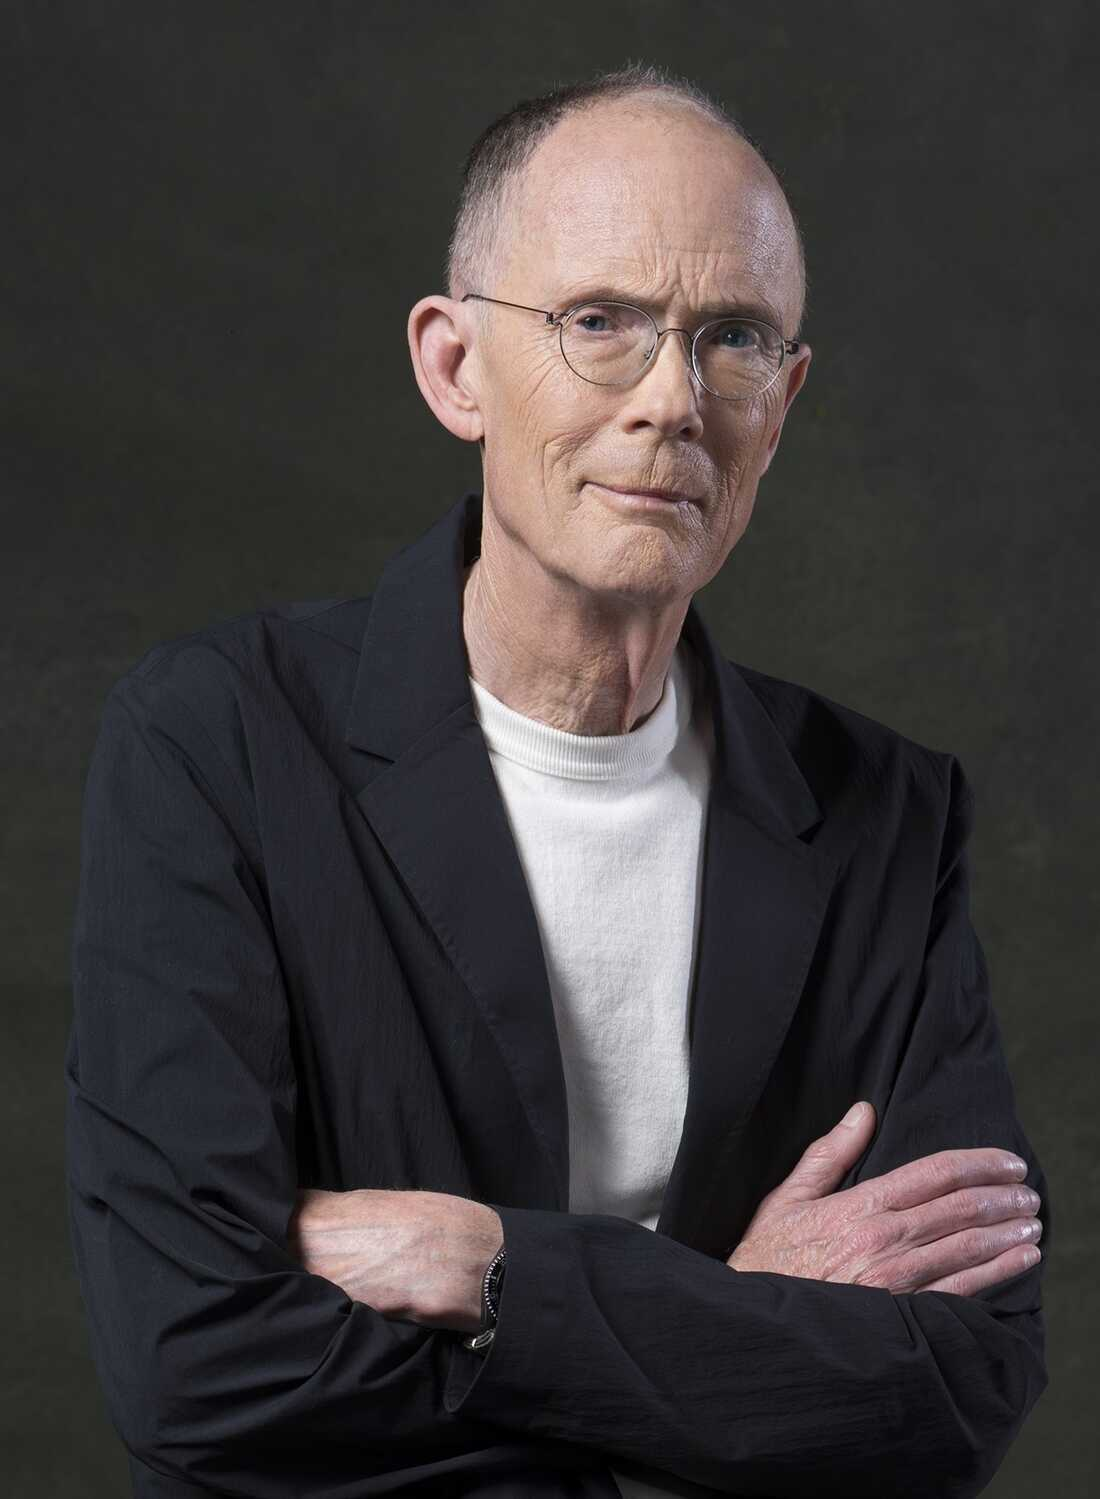 William Gibson's new novel is Agency.